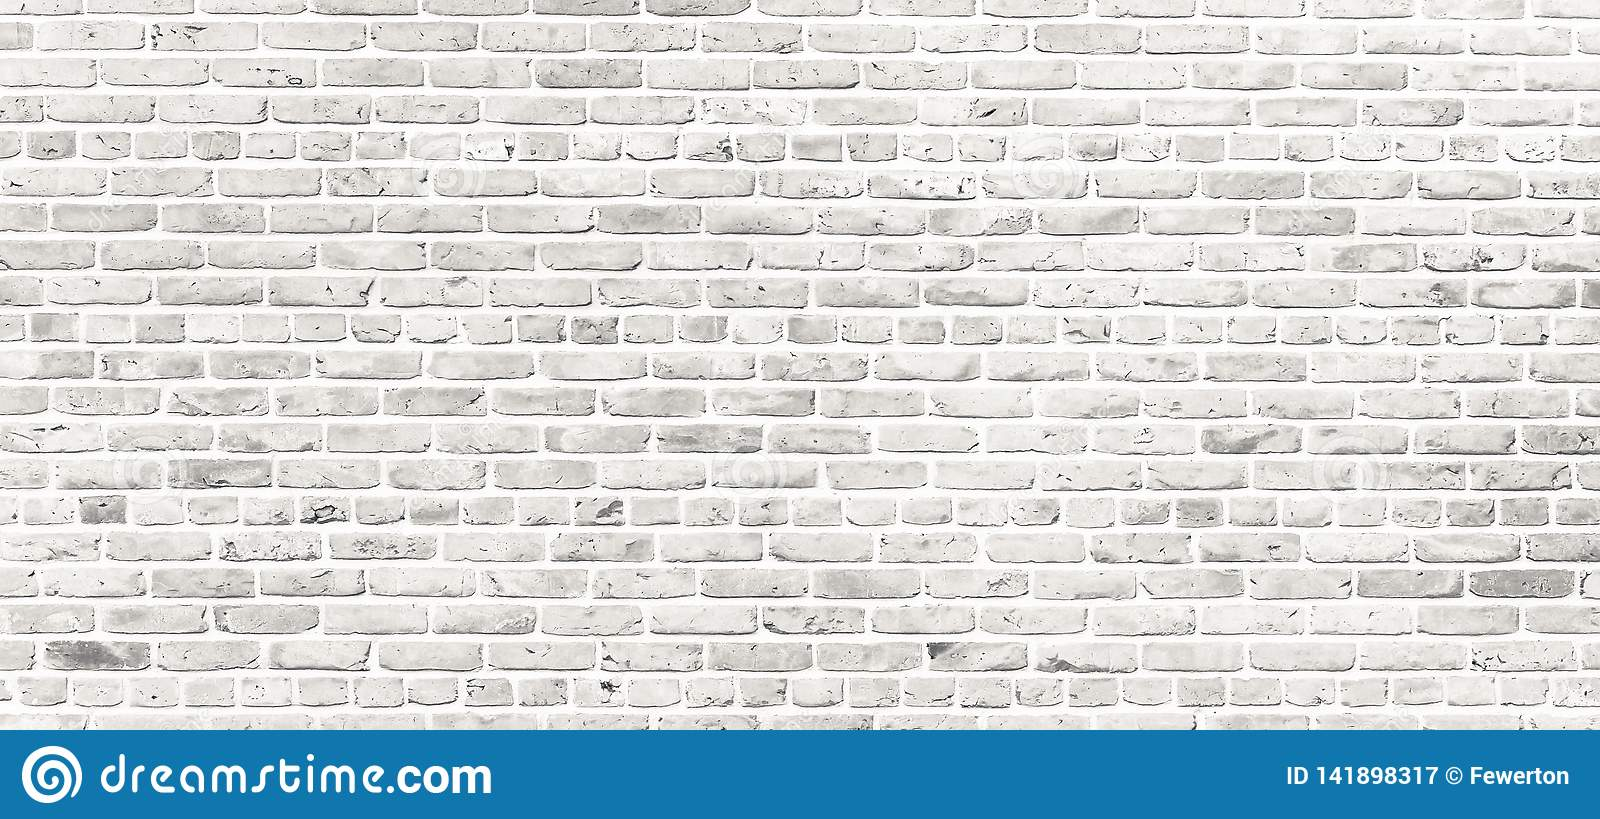 White brick wall. Simple grungy white brick wall with light gray shades pattern surface texture background in wide panorama format